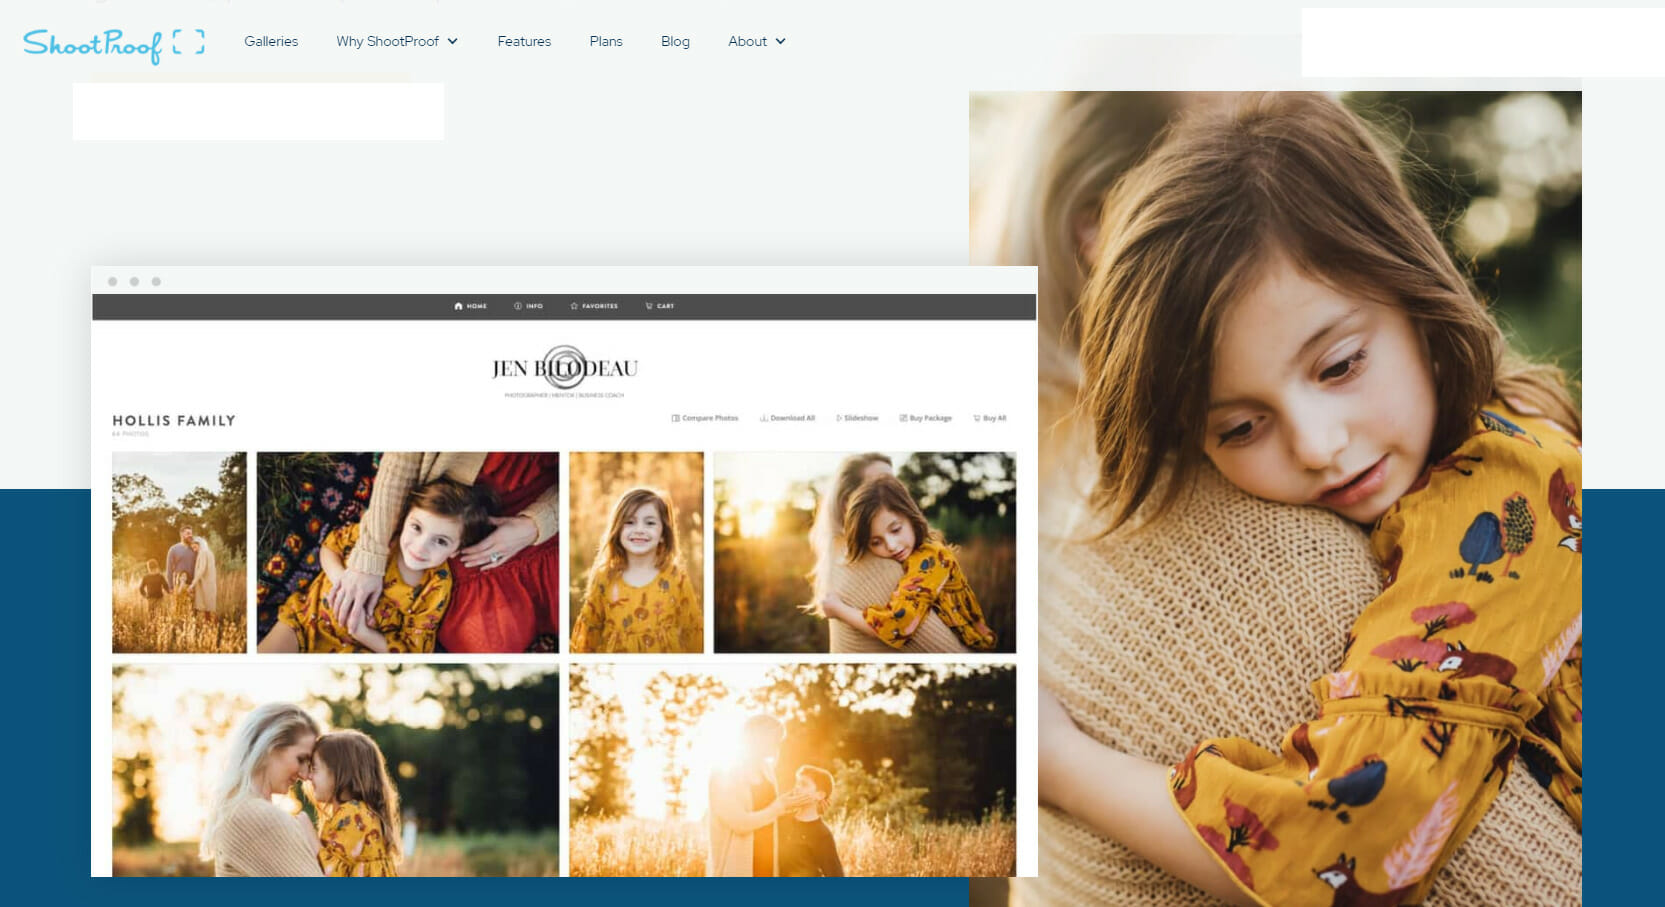 6. Shoot Proof - best online tools for photographers